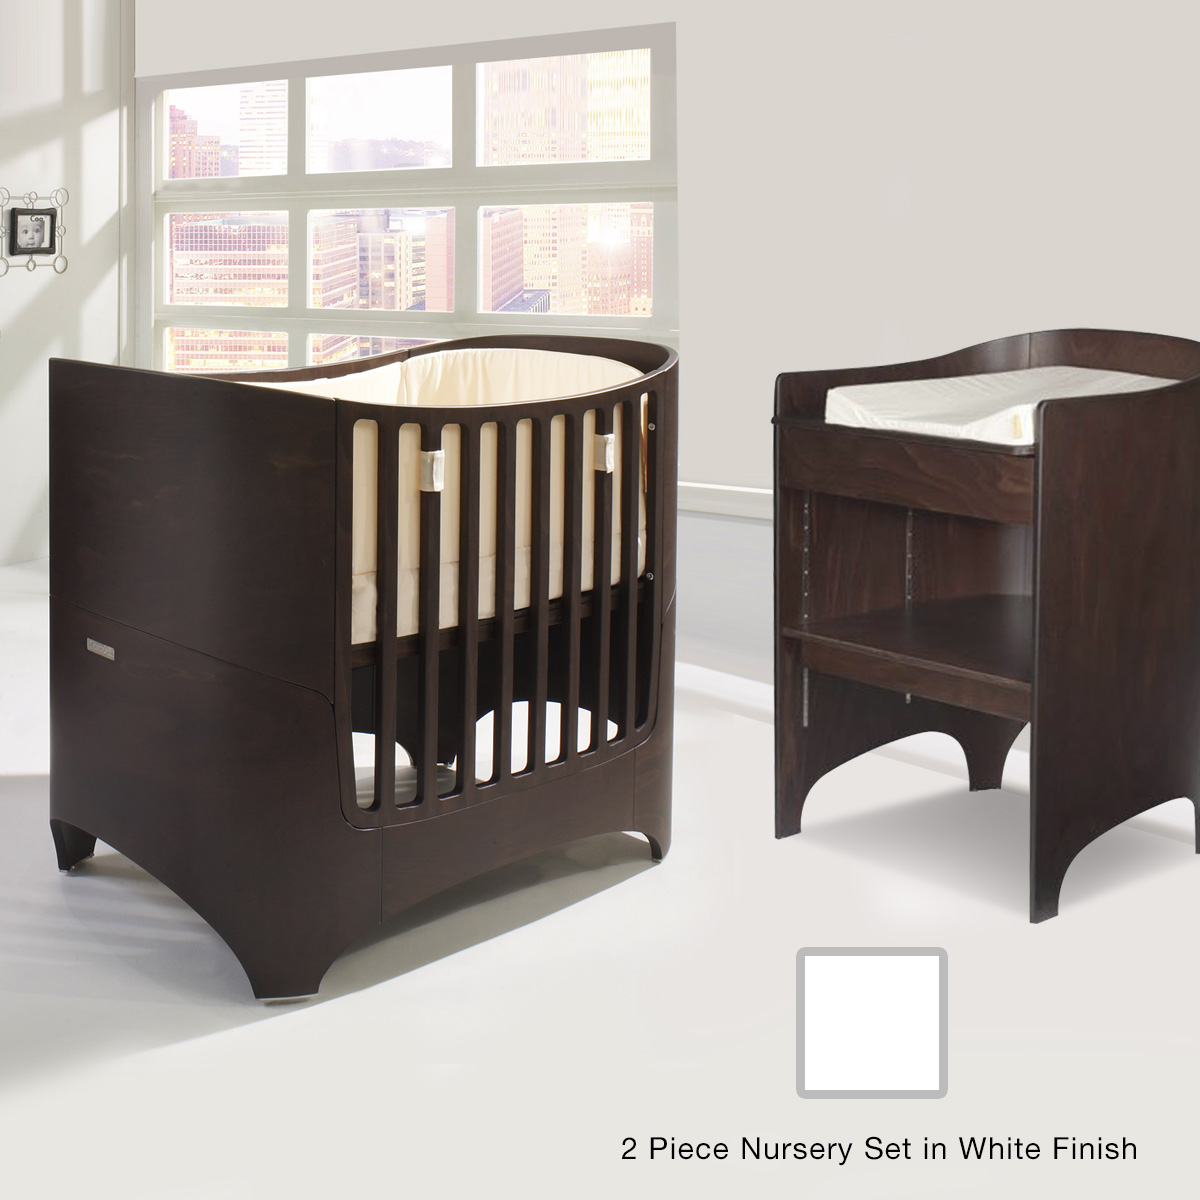 tulip leander  piece nursery set  crib  conversion kit and  - tulip leander  piece nursery set  crib  conversion kit and changingtable in white free shipping